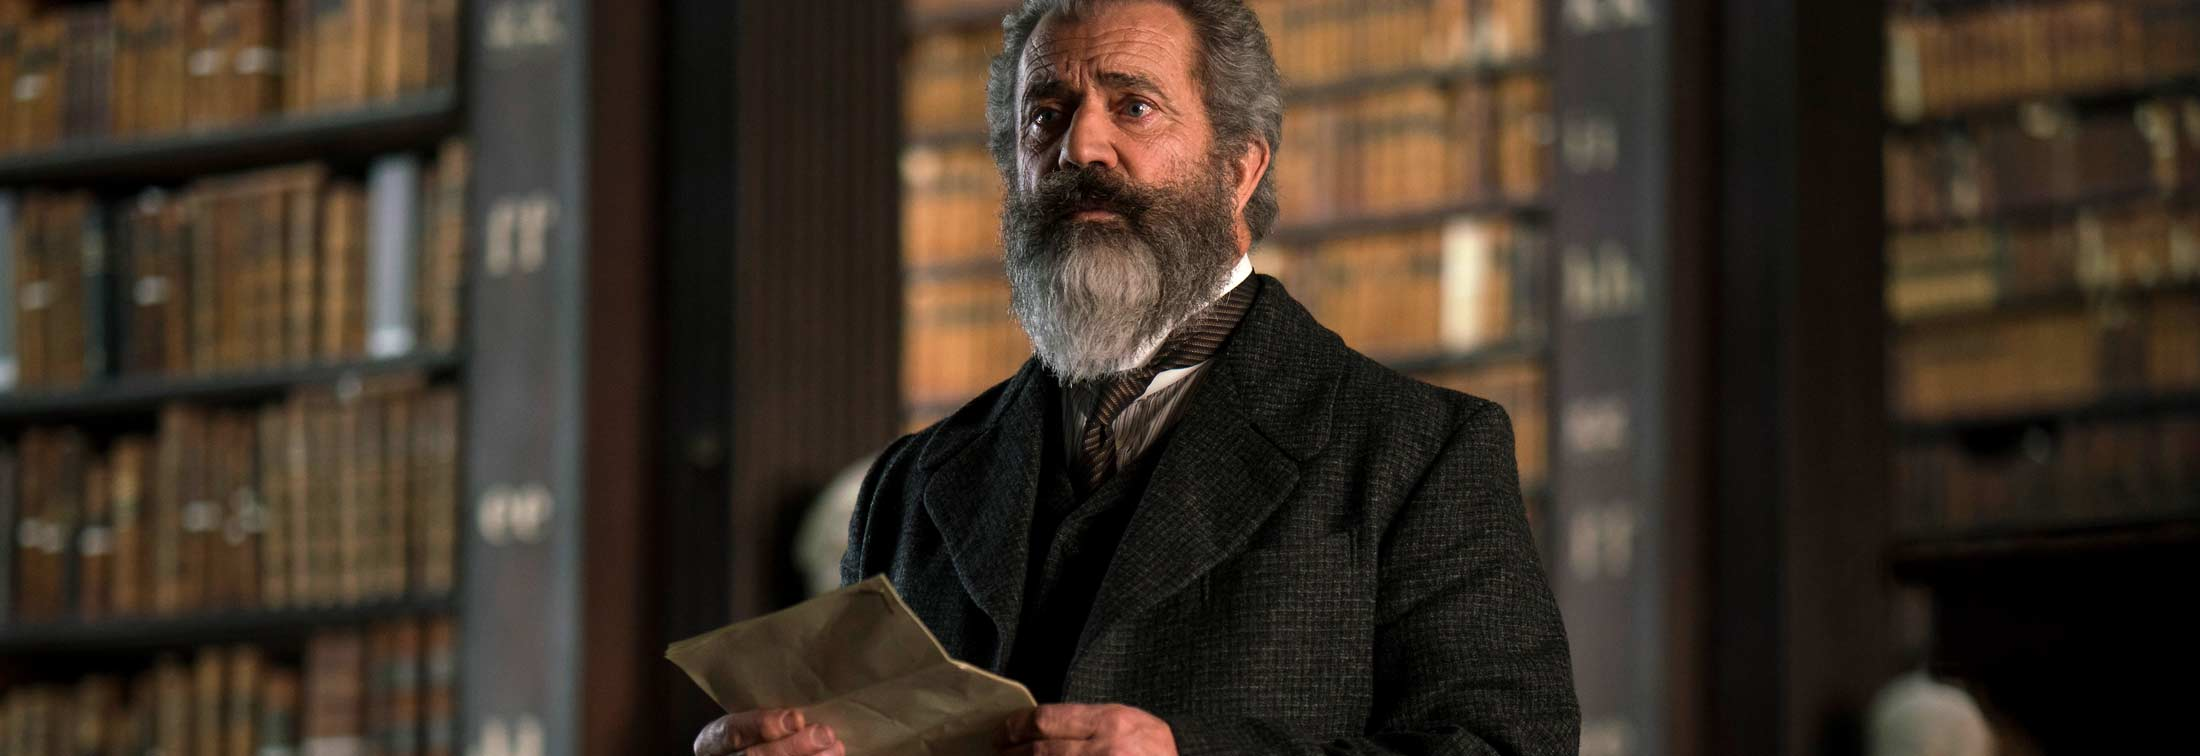 The Professor and the Madman - Mel Gibson's dictionary origin story a dry read